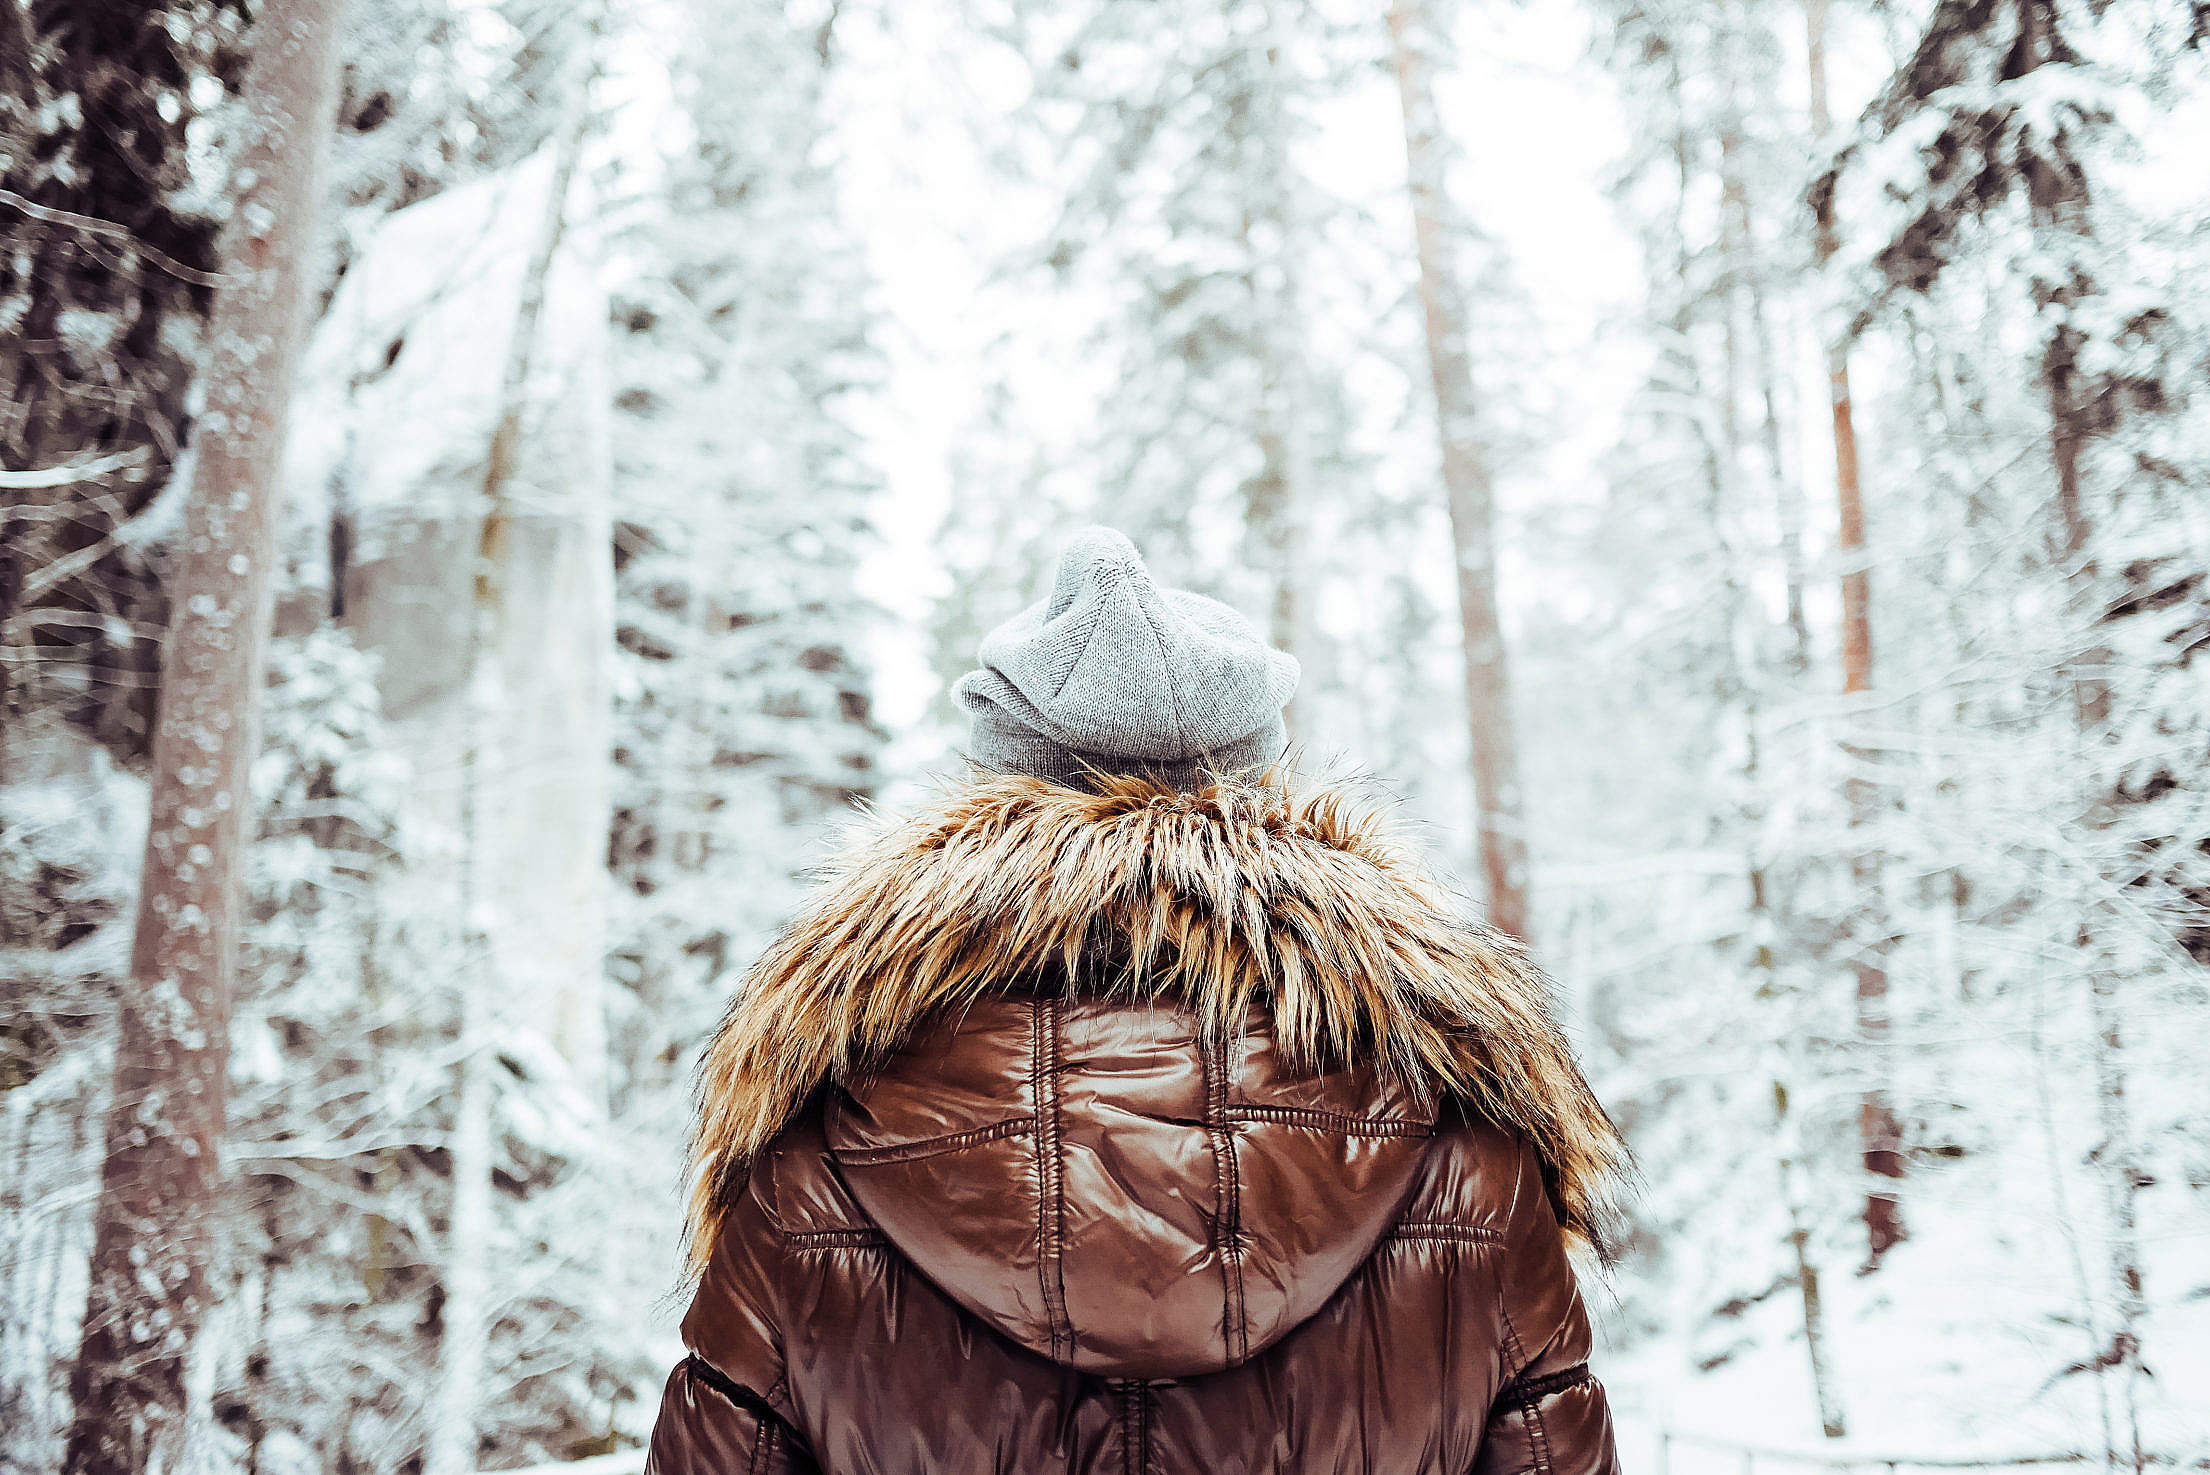 Girl in Winter Jacket Walking in Snowy Forest